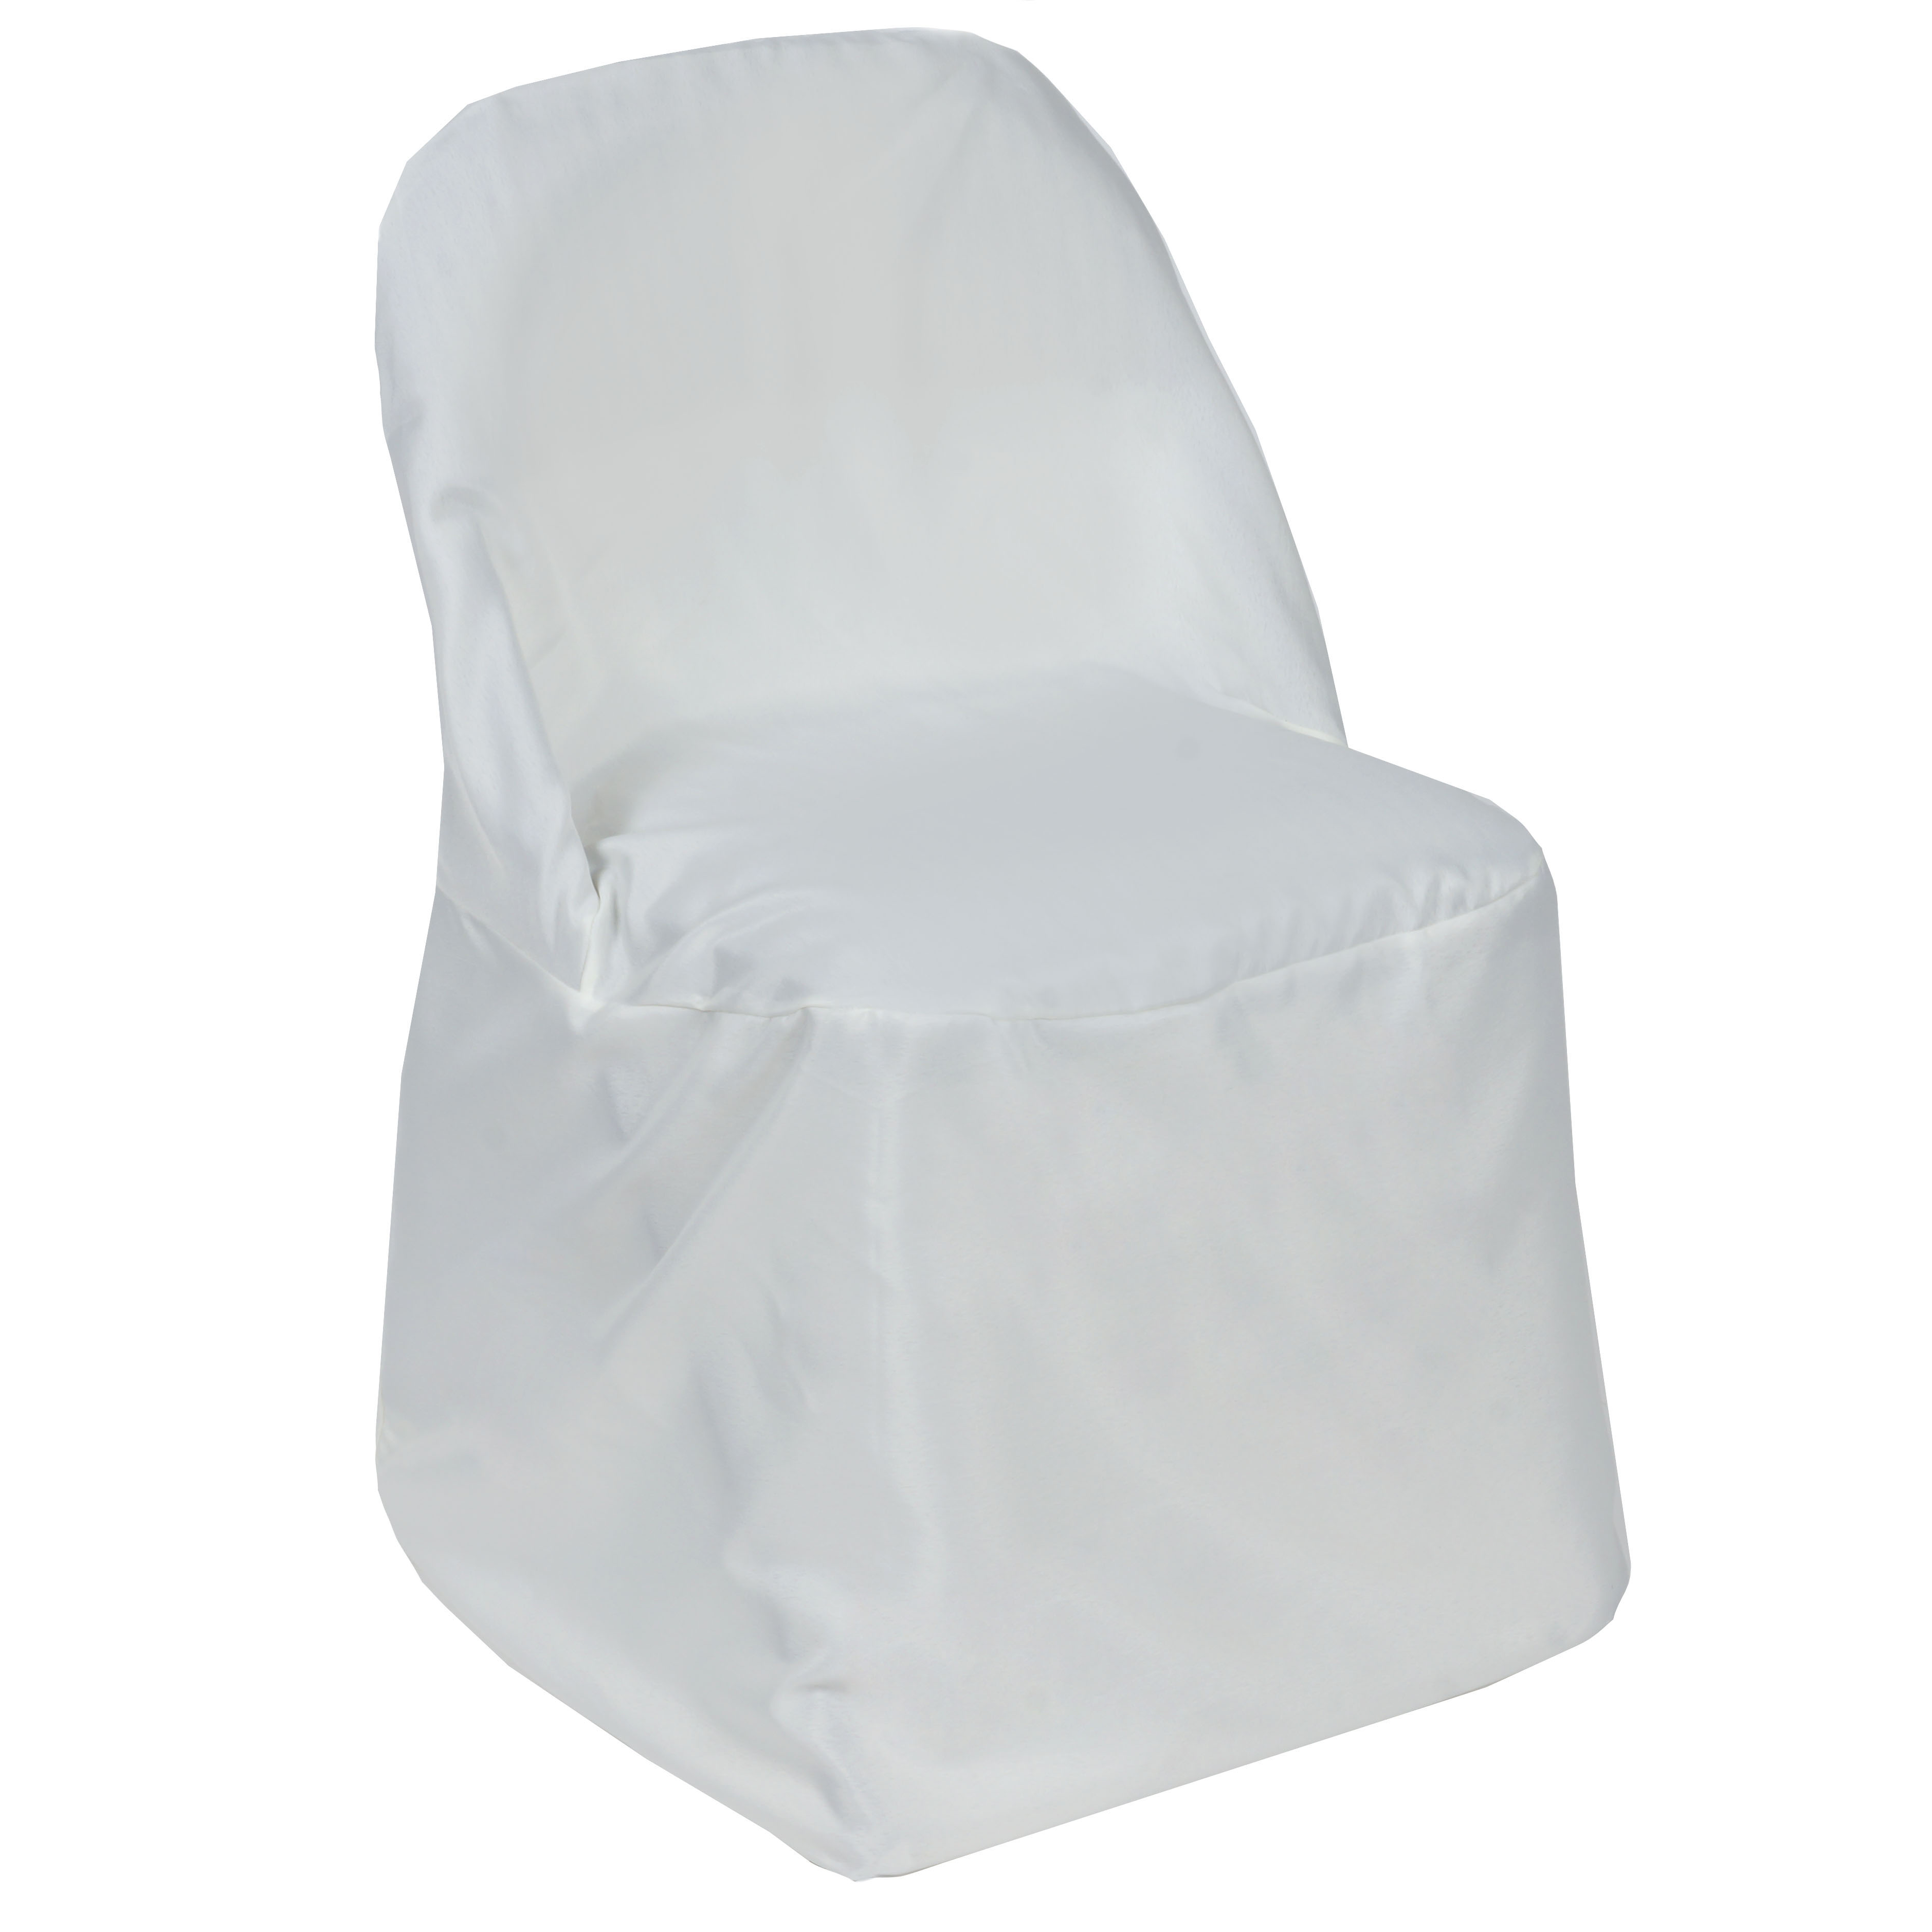 white folding chair covers ebay small office club chairs 100 pcs polyester round wholesale